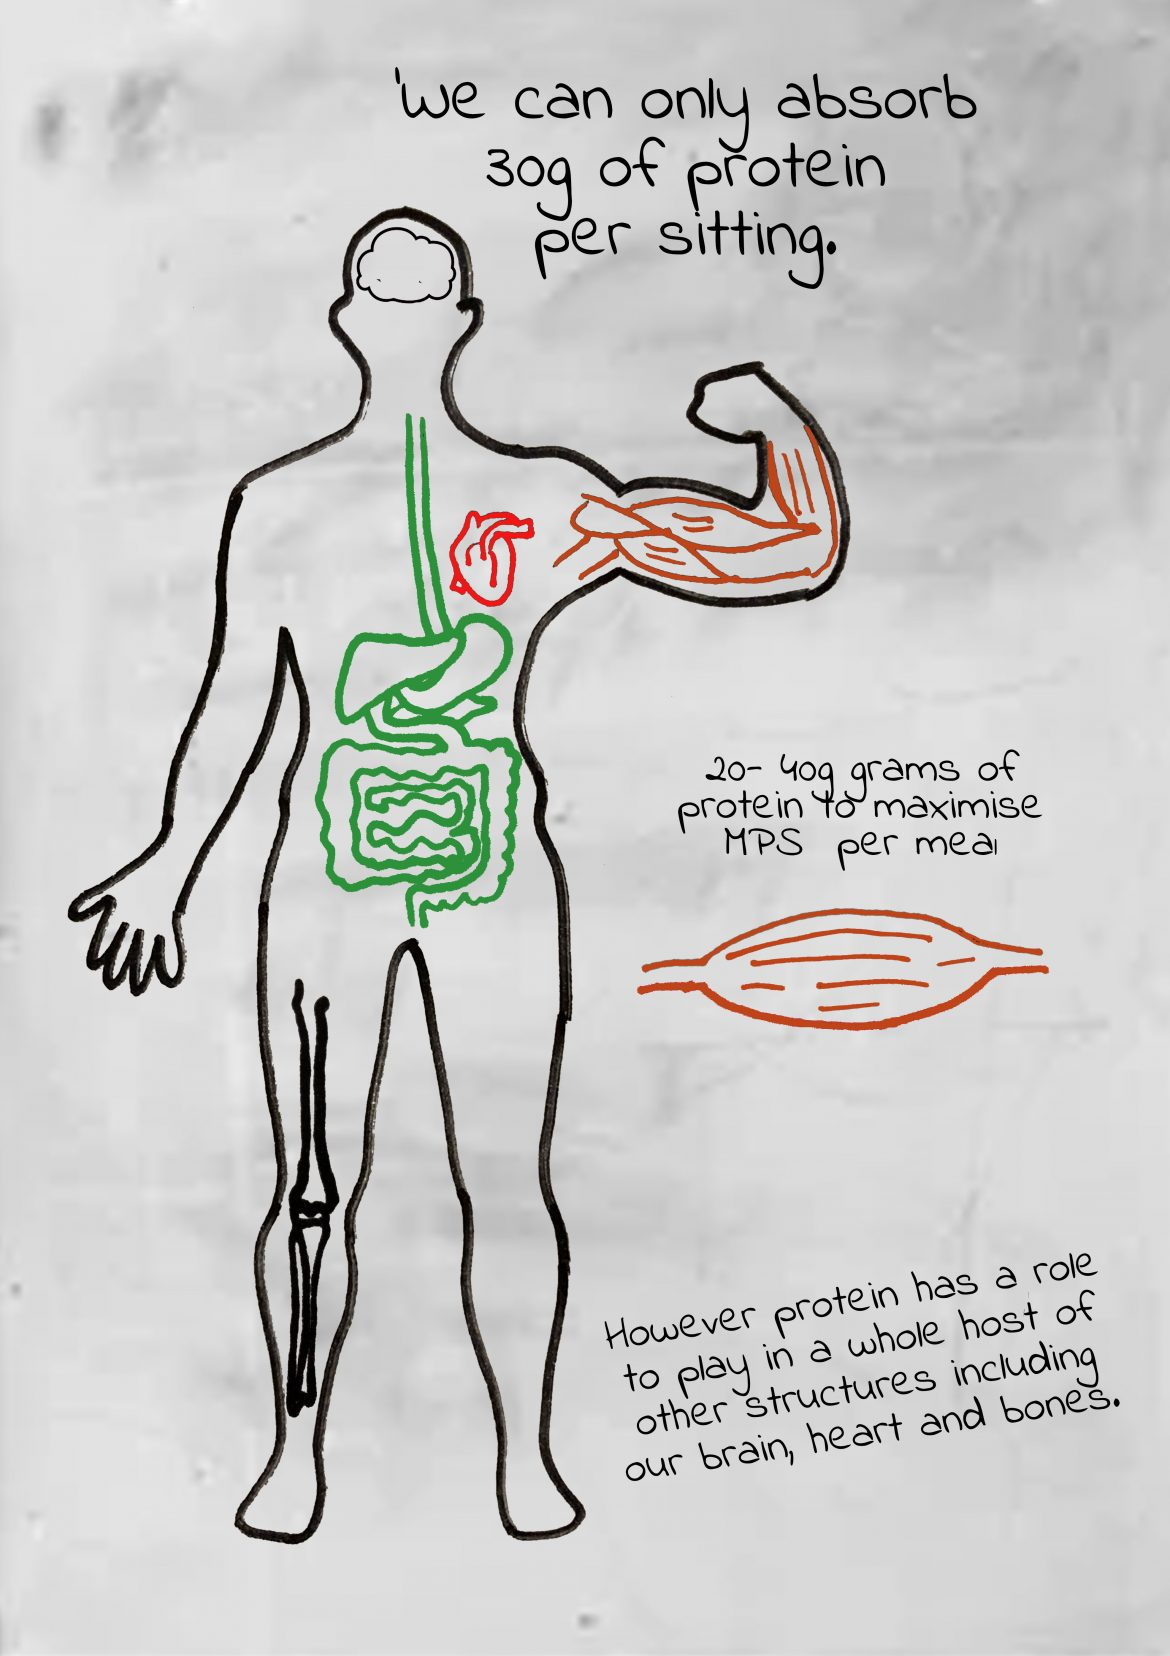 drawing of human body How much protein do you absorb per sitting